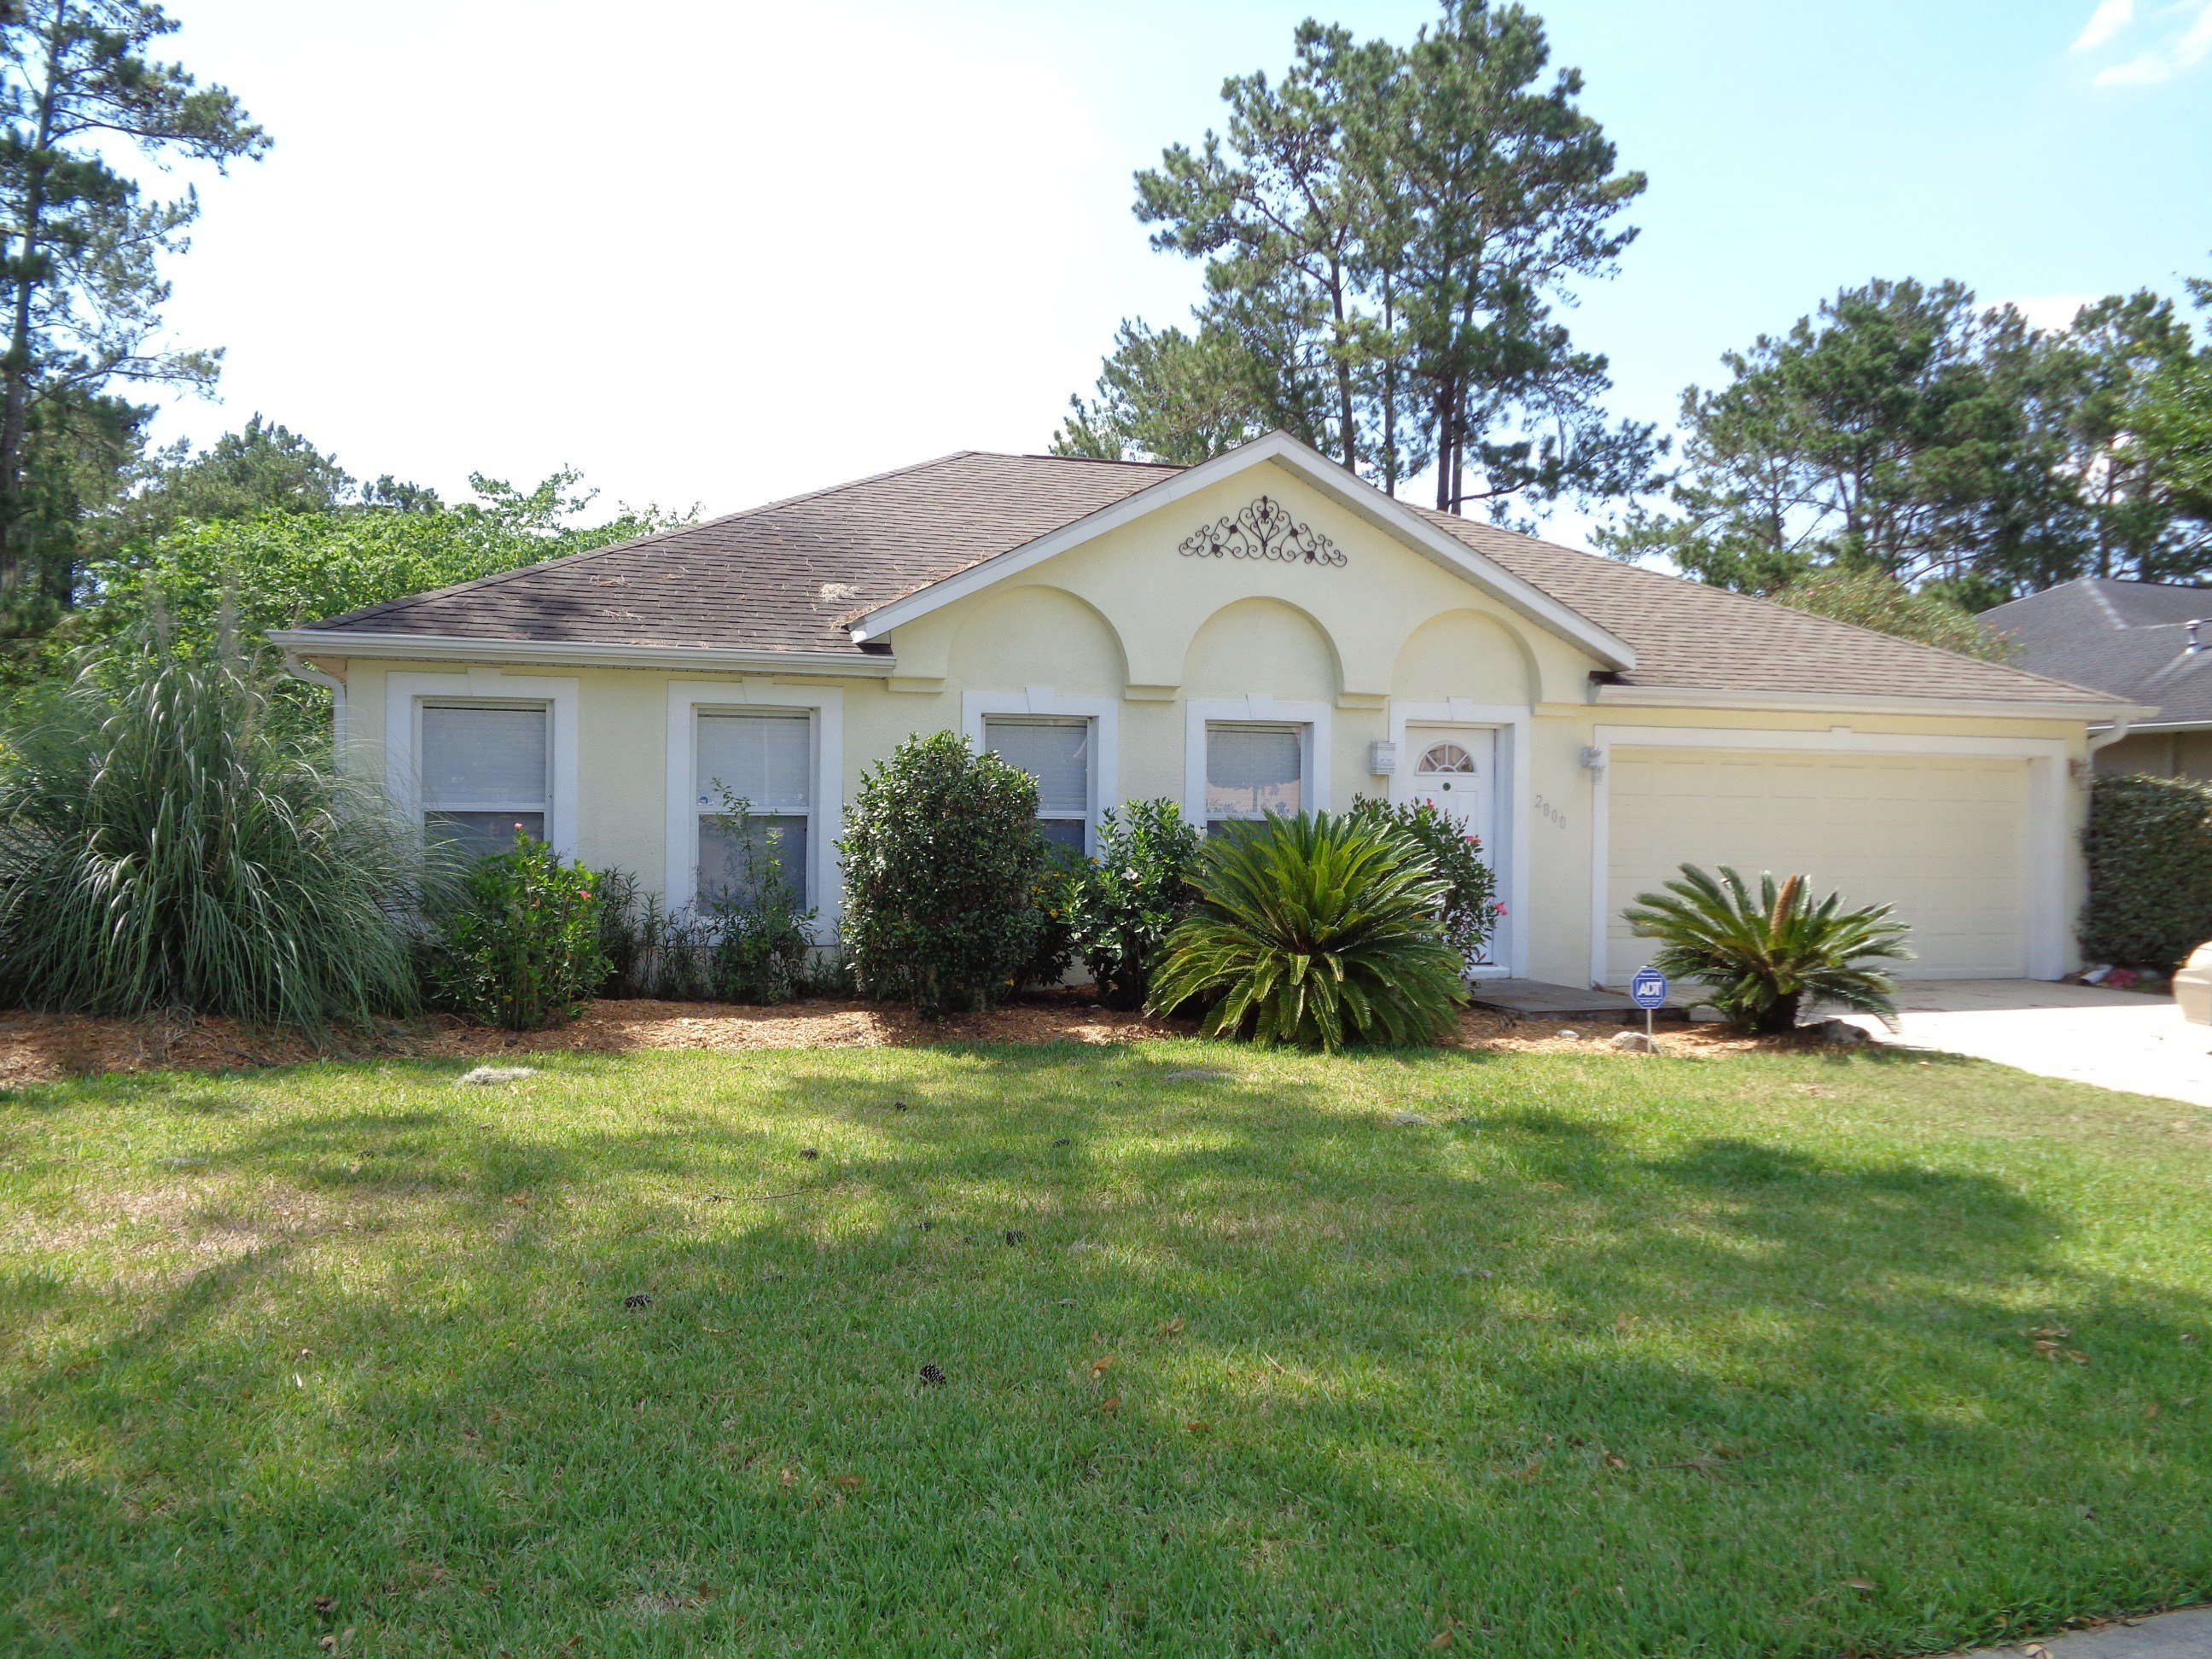 Best 2800 Sw 20Th Ave Ocala Fl 34471 4 Bedroom House For Rent For 1 500 Month Zumper With Pictures